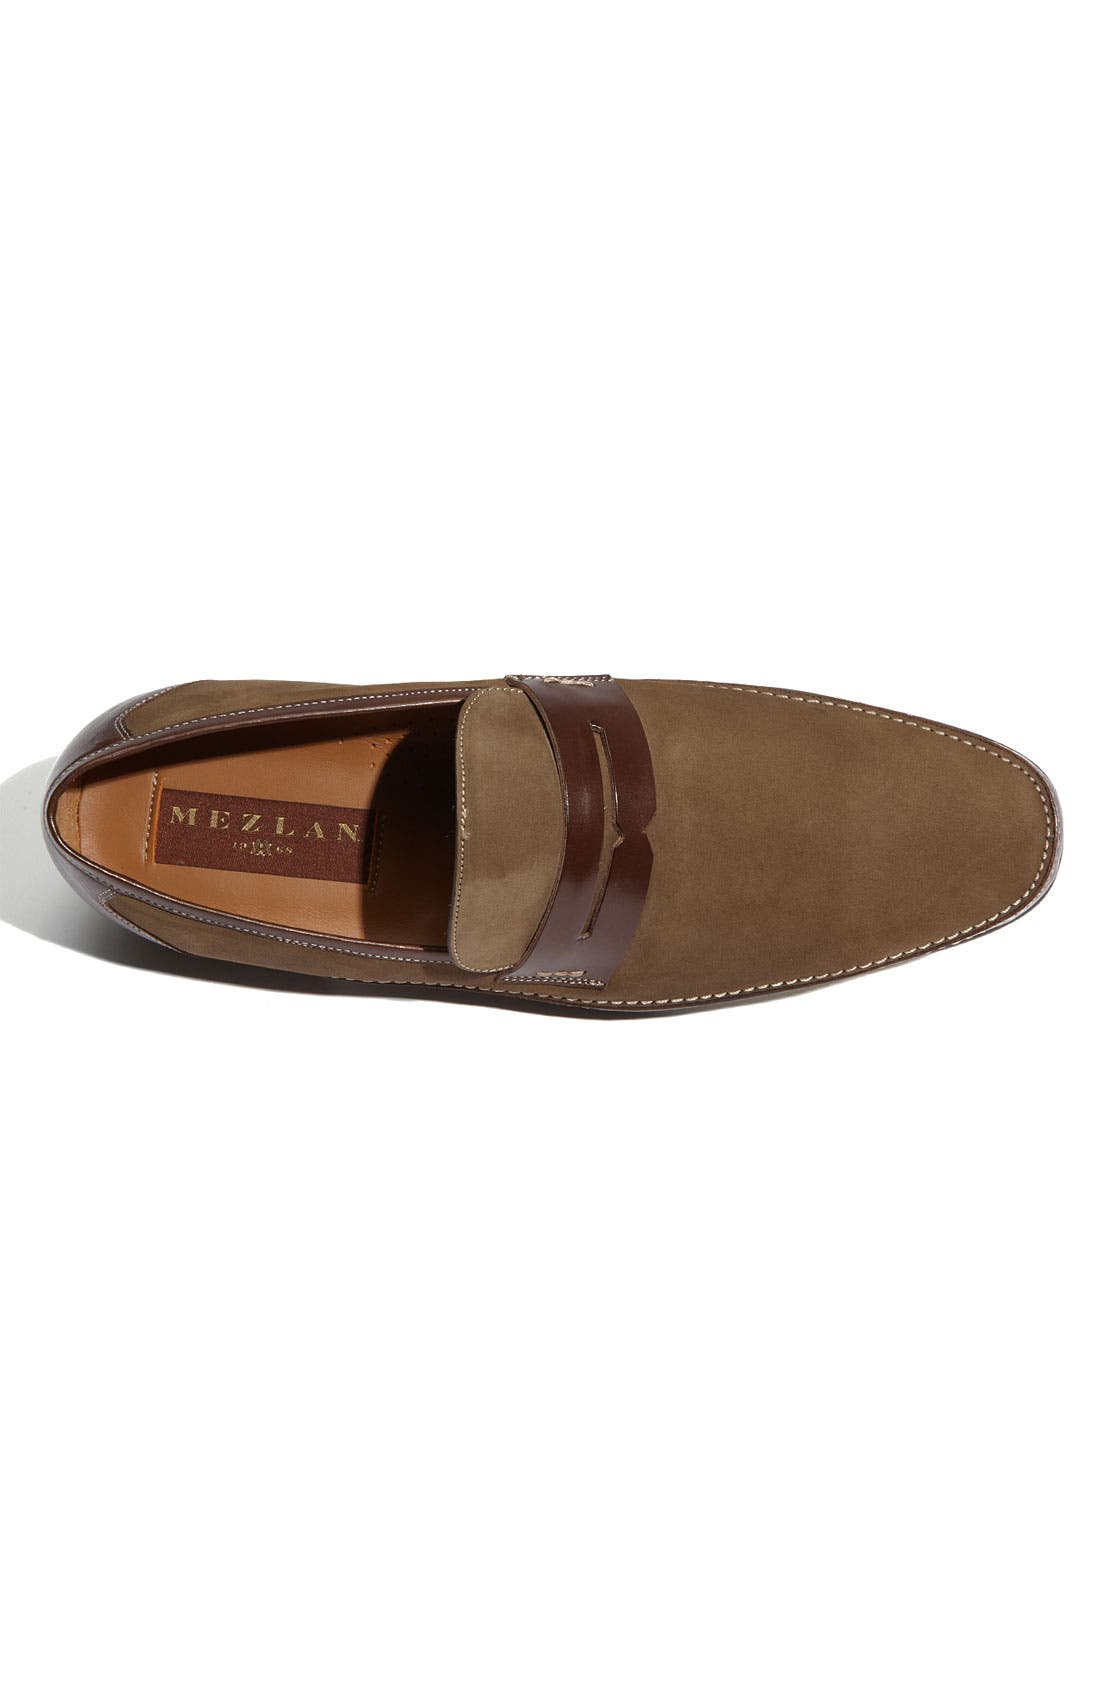 Alternate Image 3  - Mezlan 'Ruskin' Penny Loafer